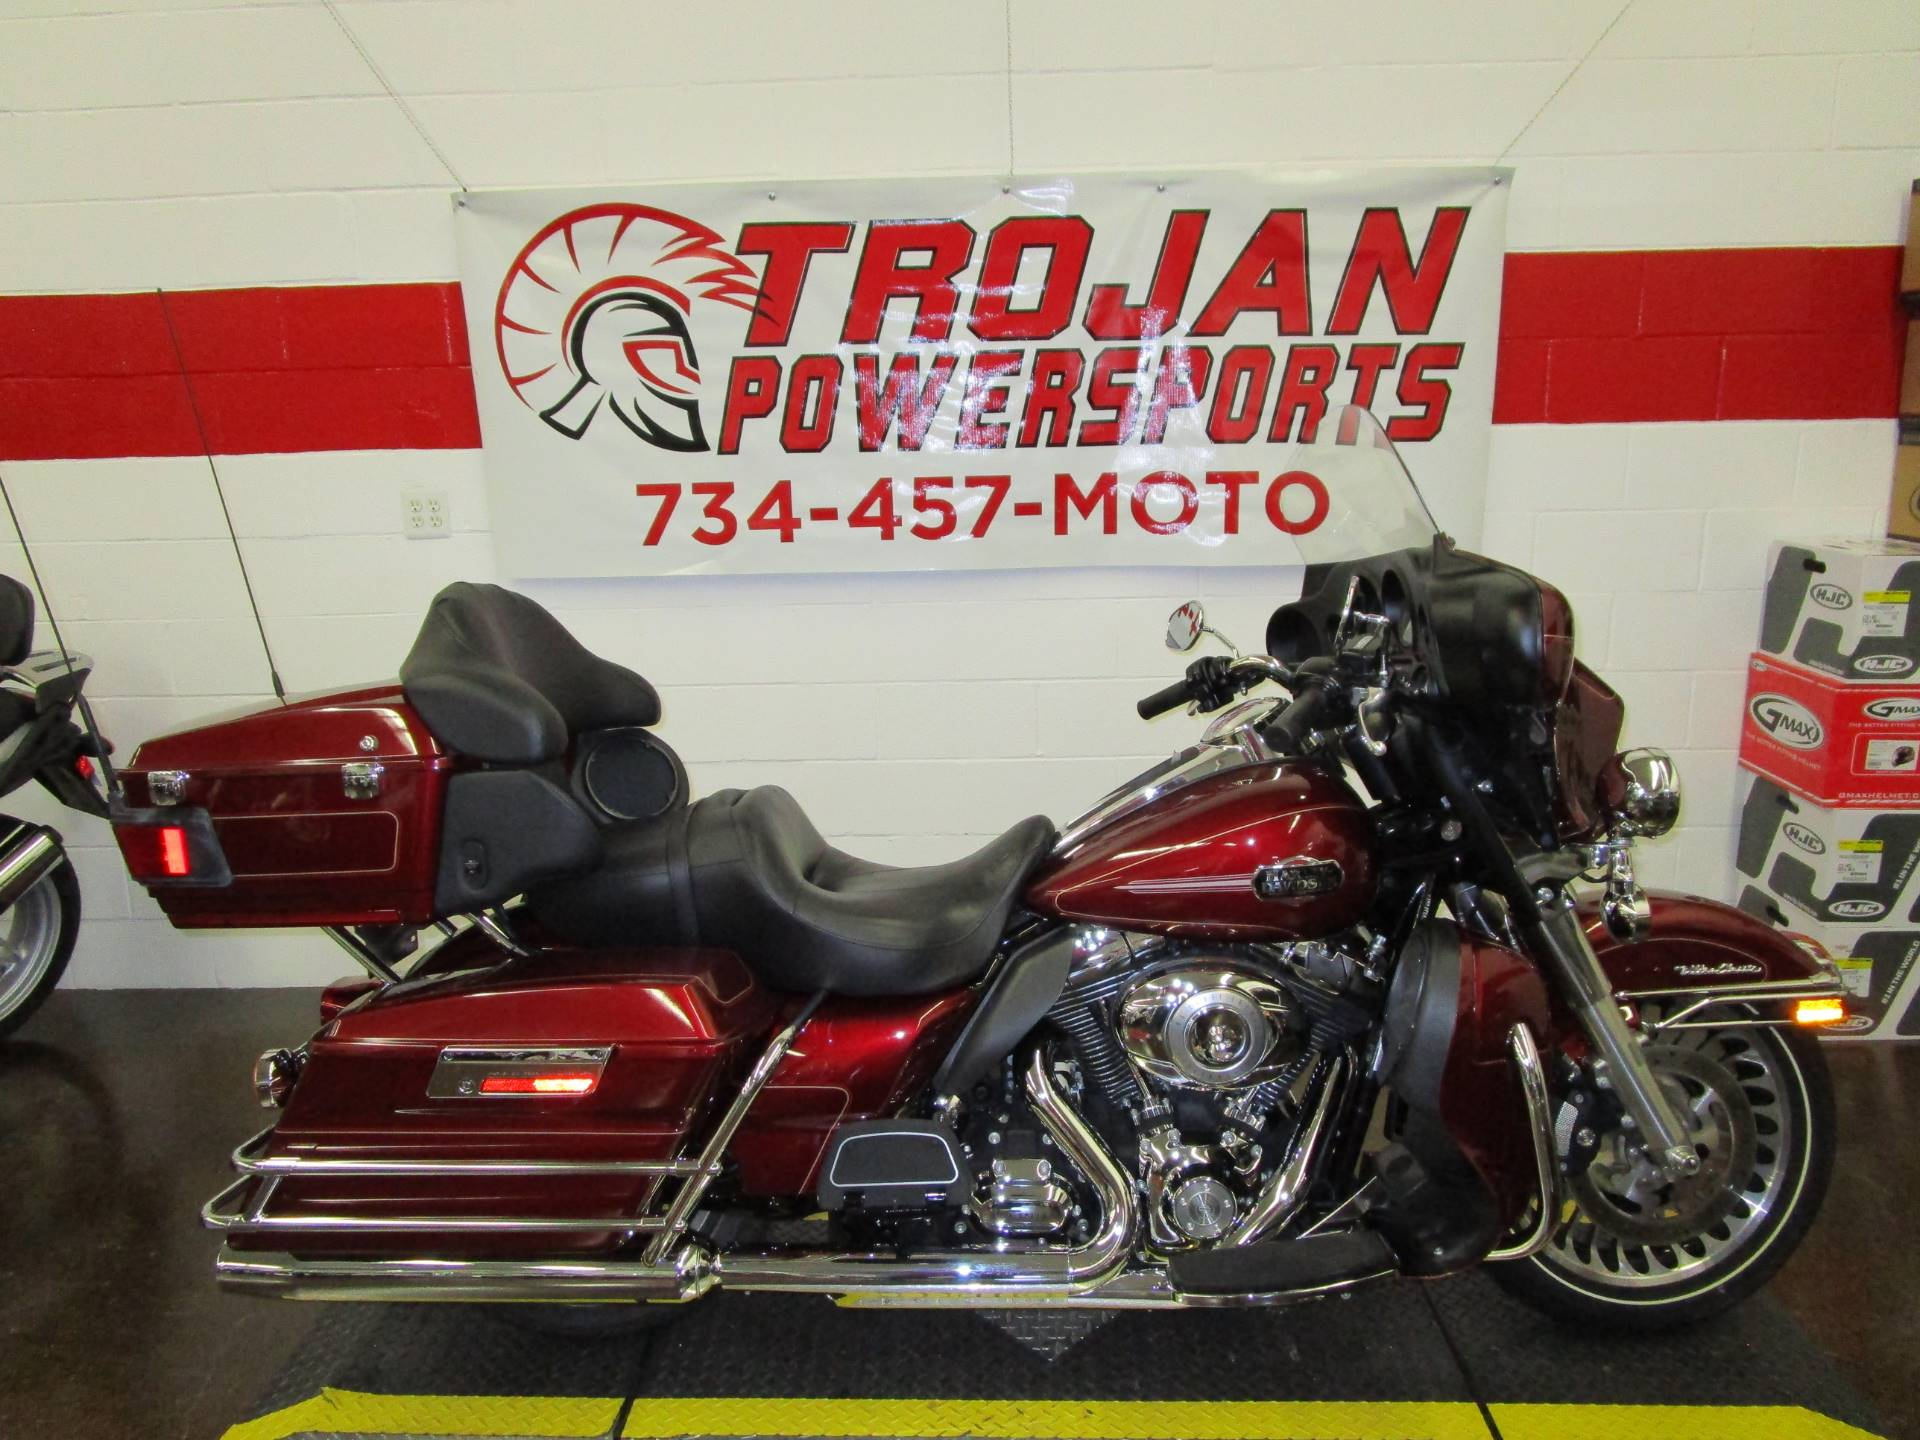 2010 Harley-Davidson Ultra Classic Electra Glide 1